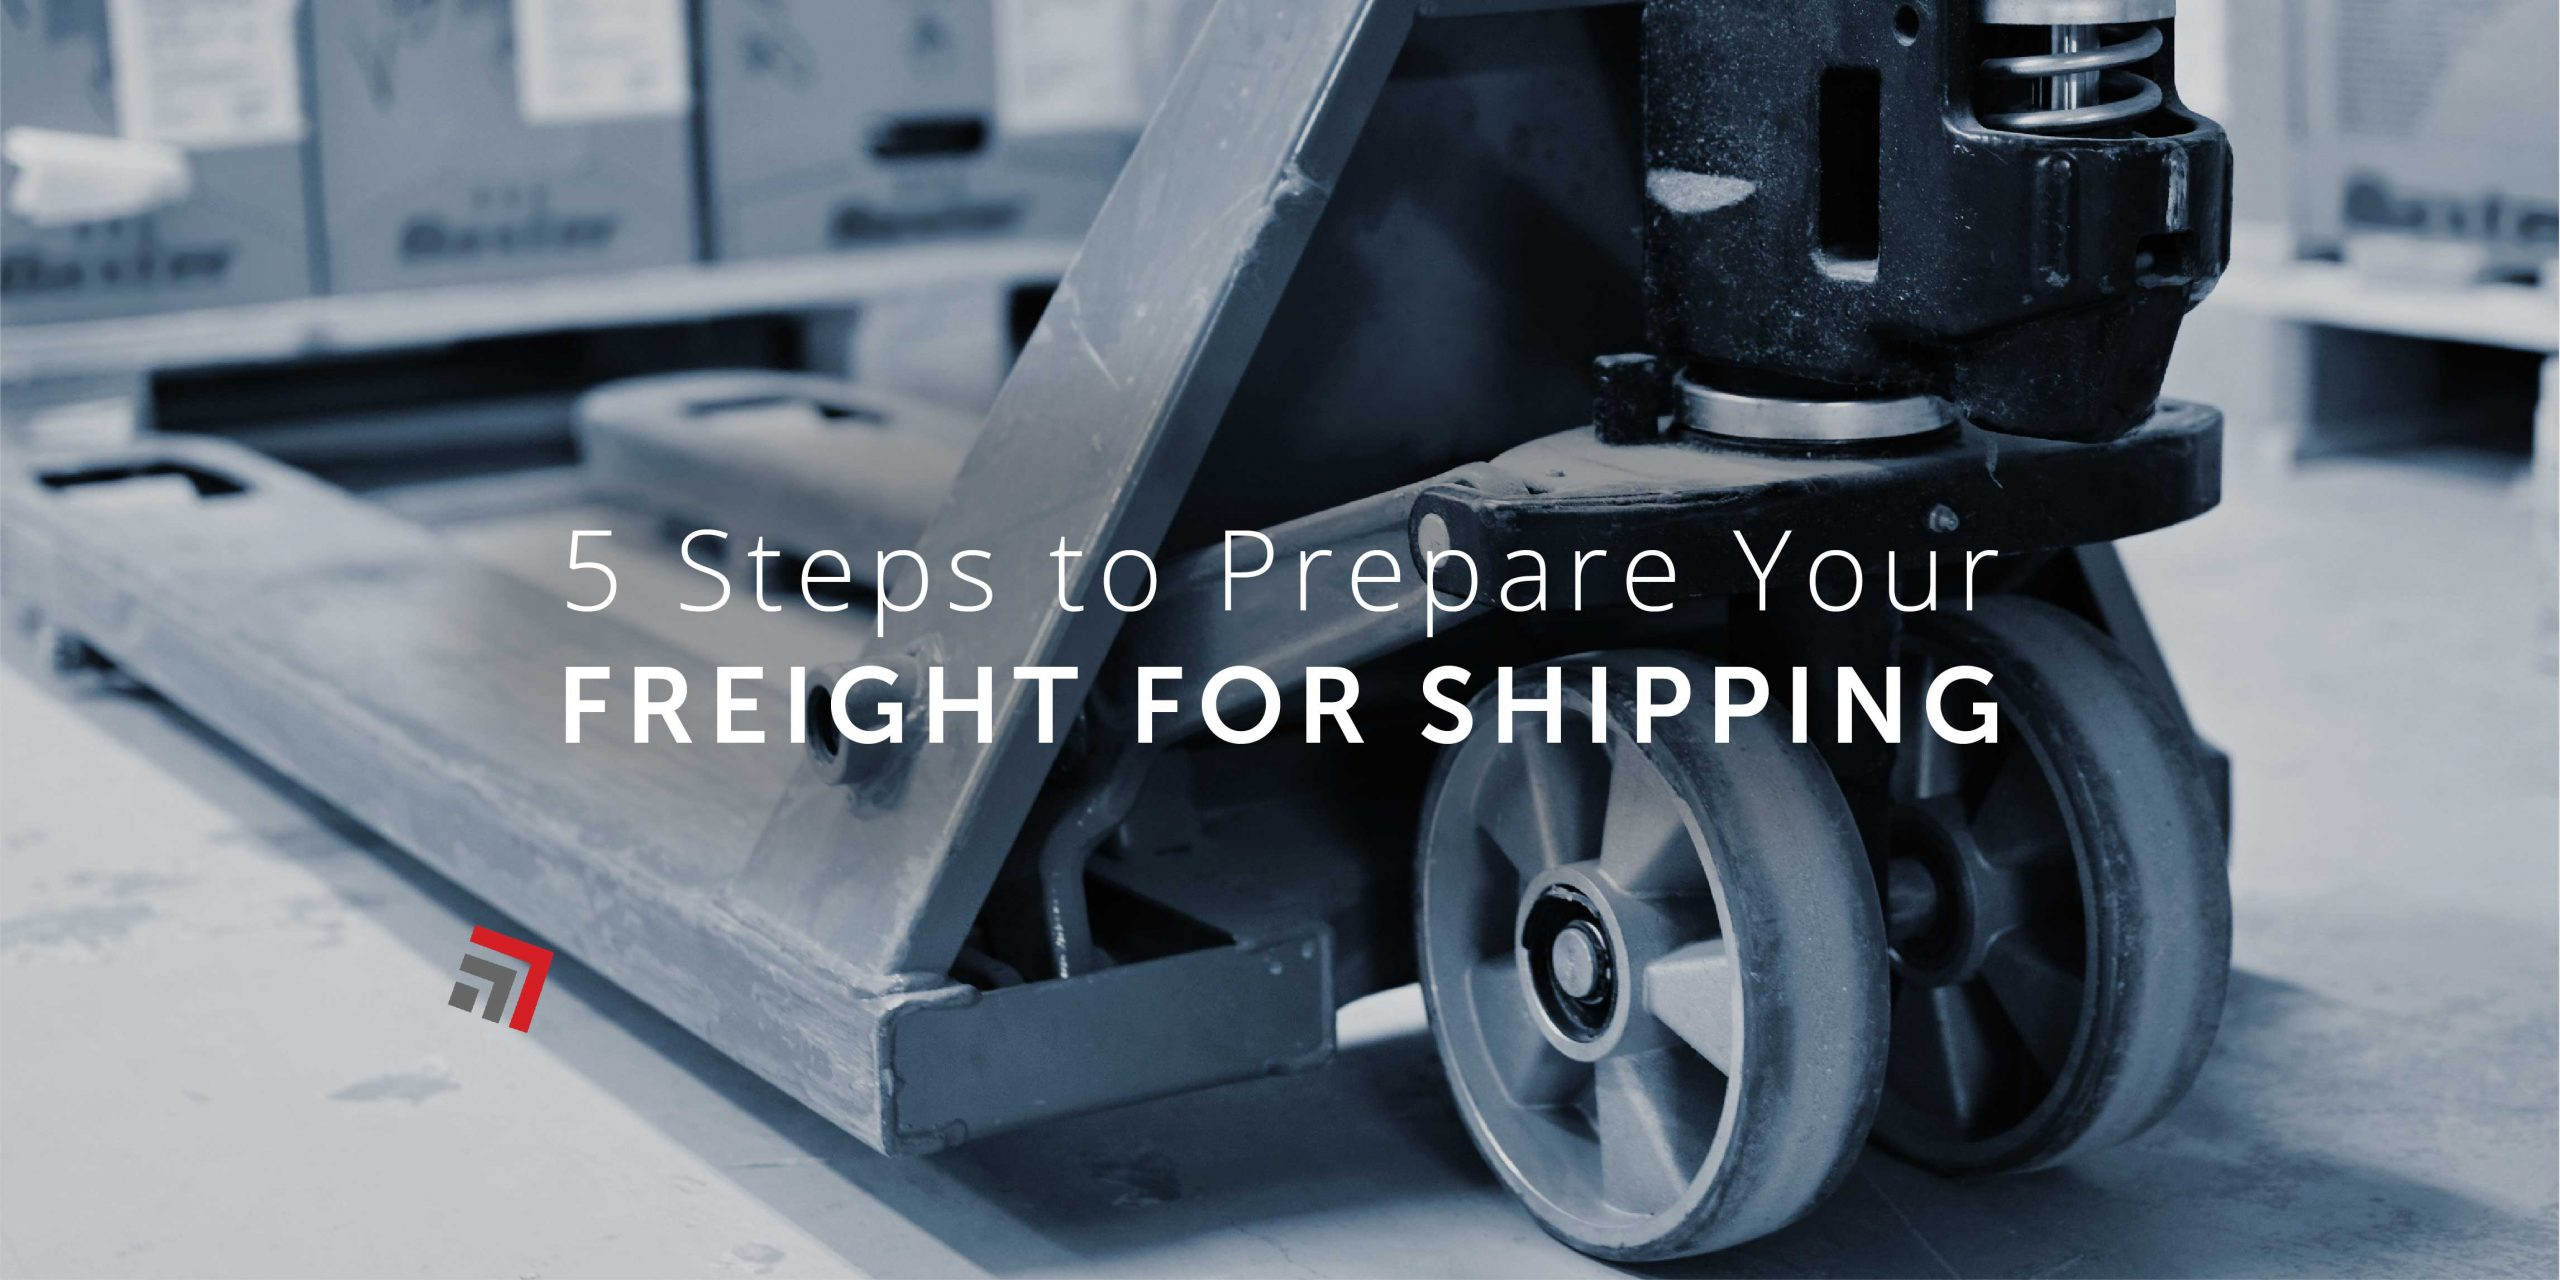 5 Steps to Prepare Your Freight For Shipping